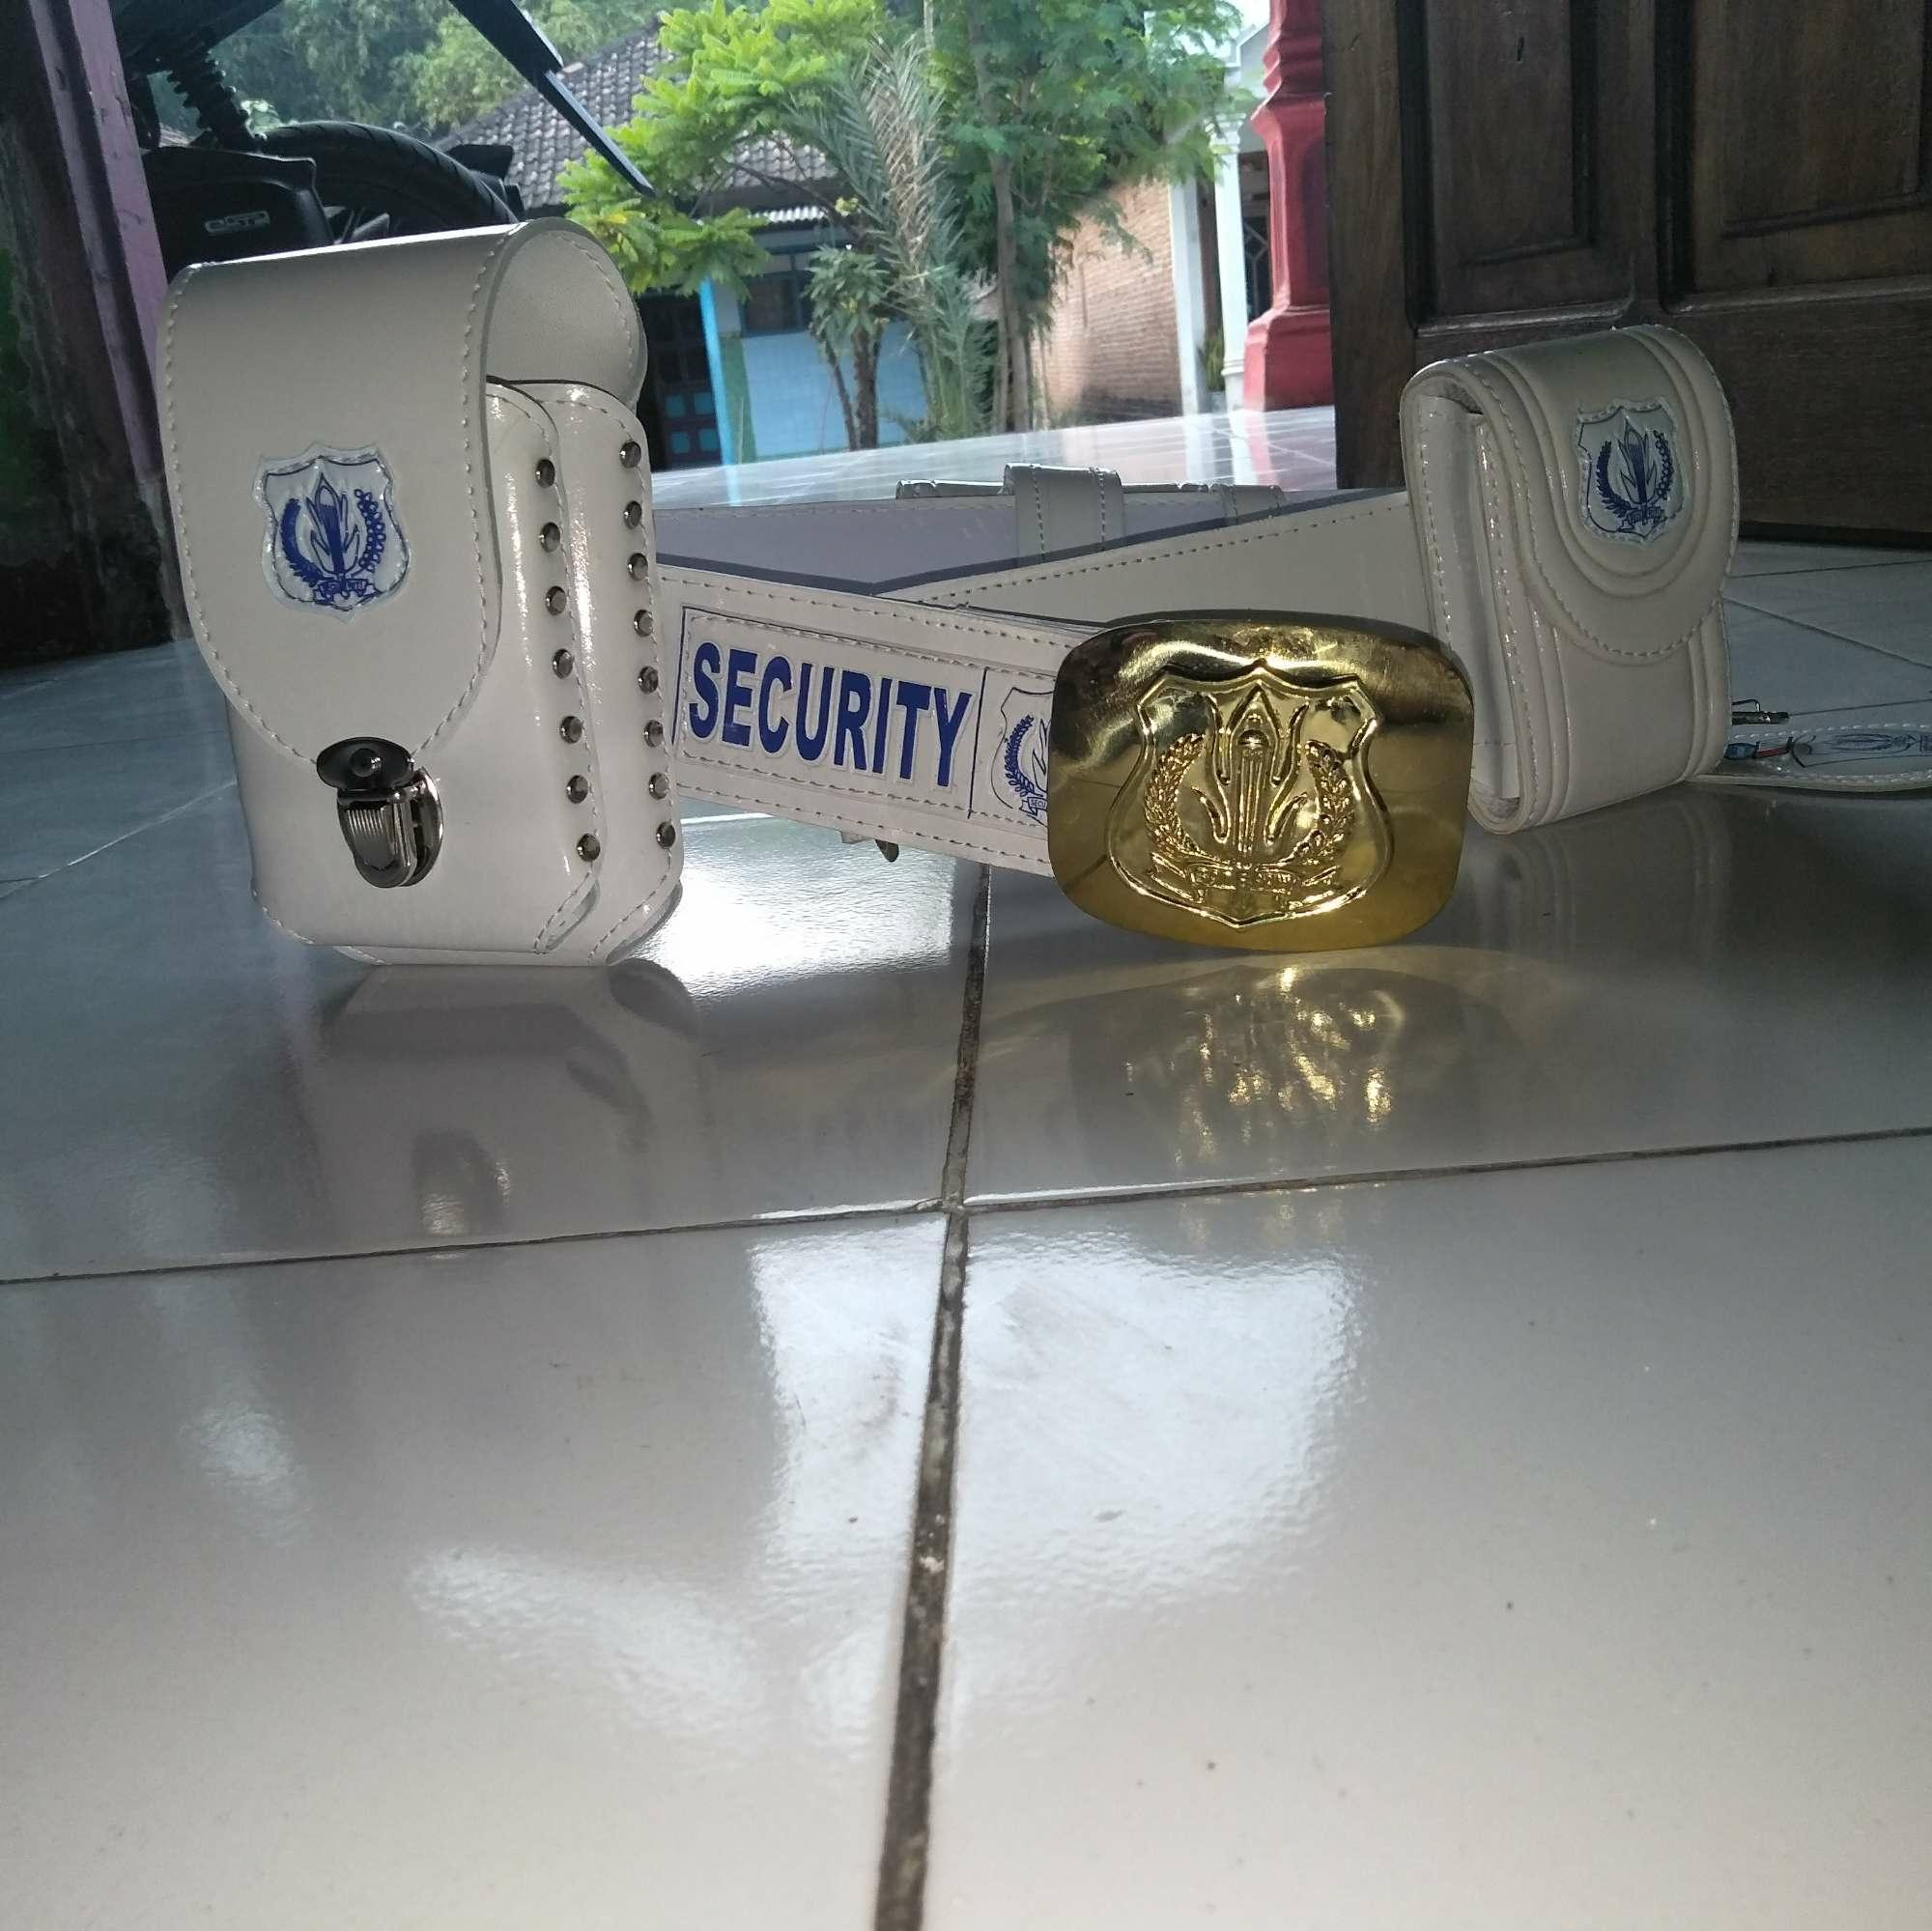 Kopel Pdl Security Putih+bangkol By Erik Atribut 86.